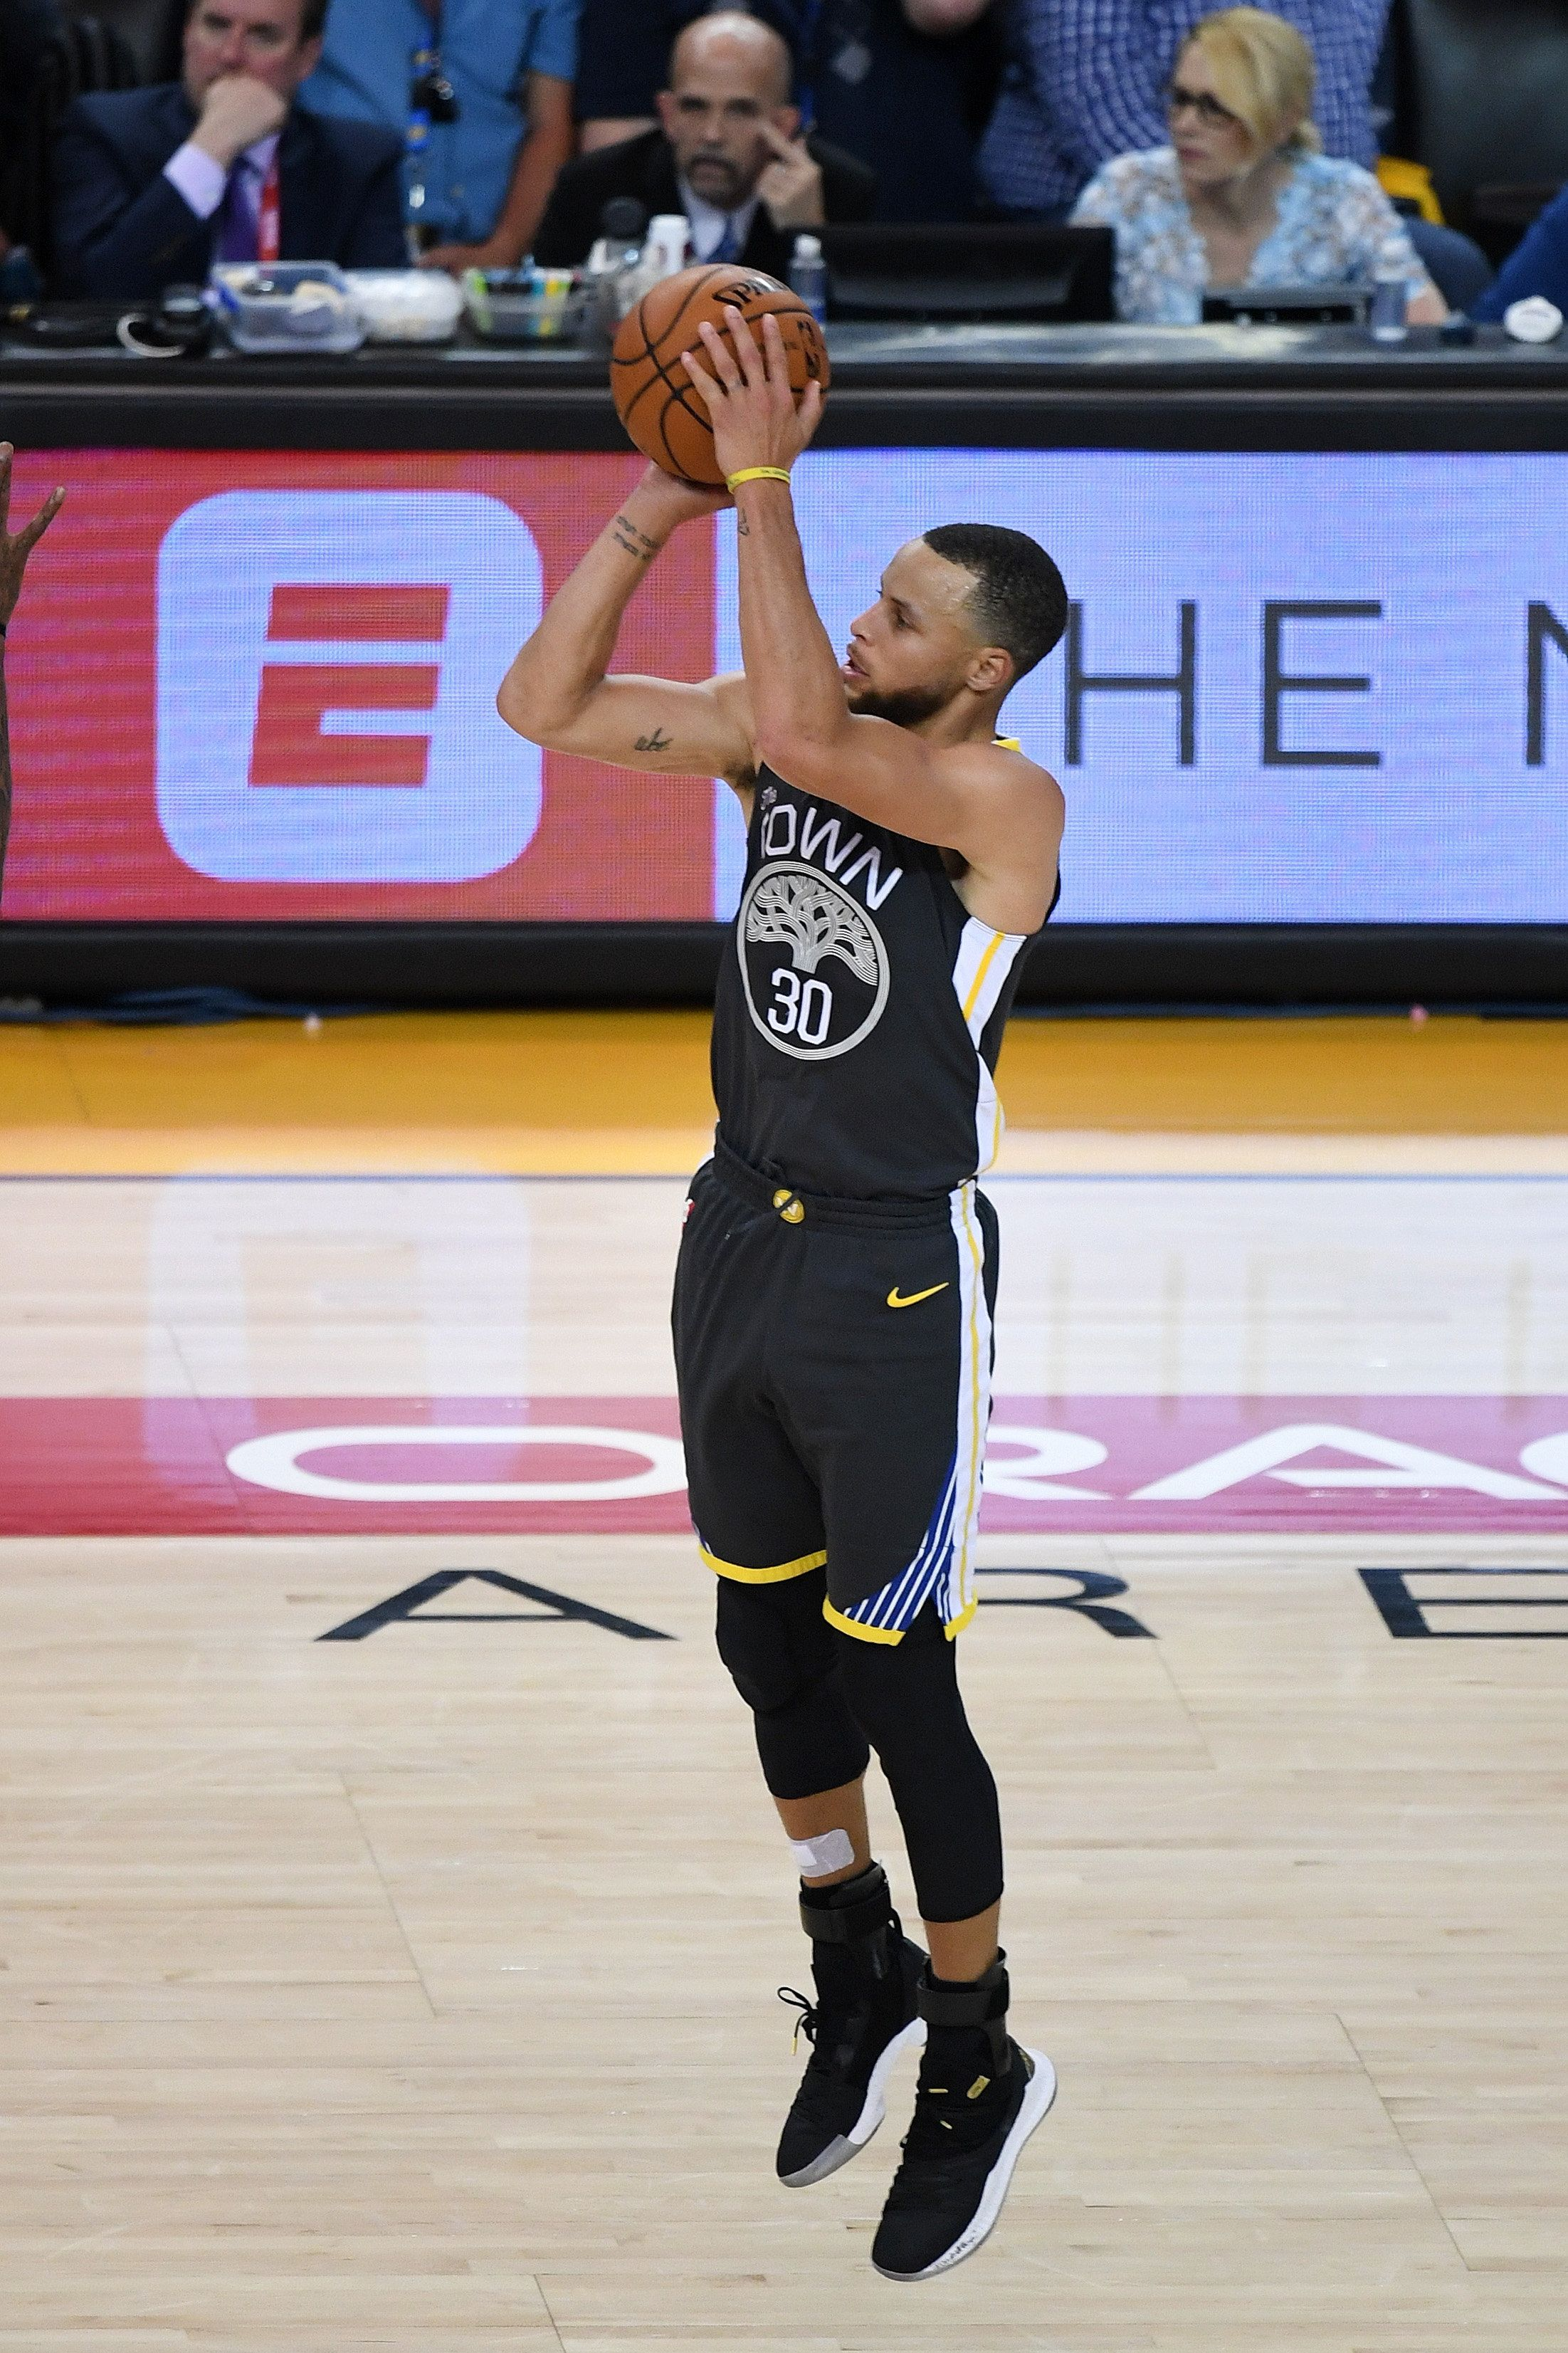 OAKLAND, CA - JUNE 03:  Stephen Curry #30 of the Golden State Warriors shoots for three against the Cleveland Cavaliers in Game 2 of the 2018 NBA Finals at ORACLE Arena on June 3, 2018 in Oakland, California. NOTE TO USER: User expressly acknowledges and agrees that, by downloading and or using this photograph, User is consenting to the terms and conditions of the Getty Images License Agreement.  (Photo by Thearon W. Henderson/Getty Images)